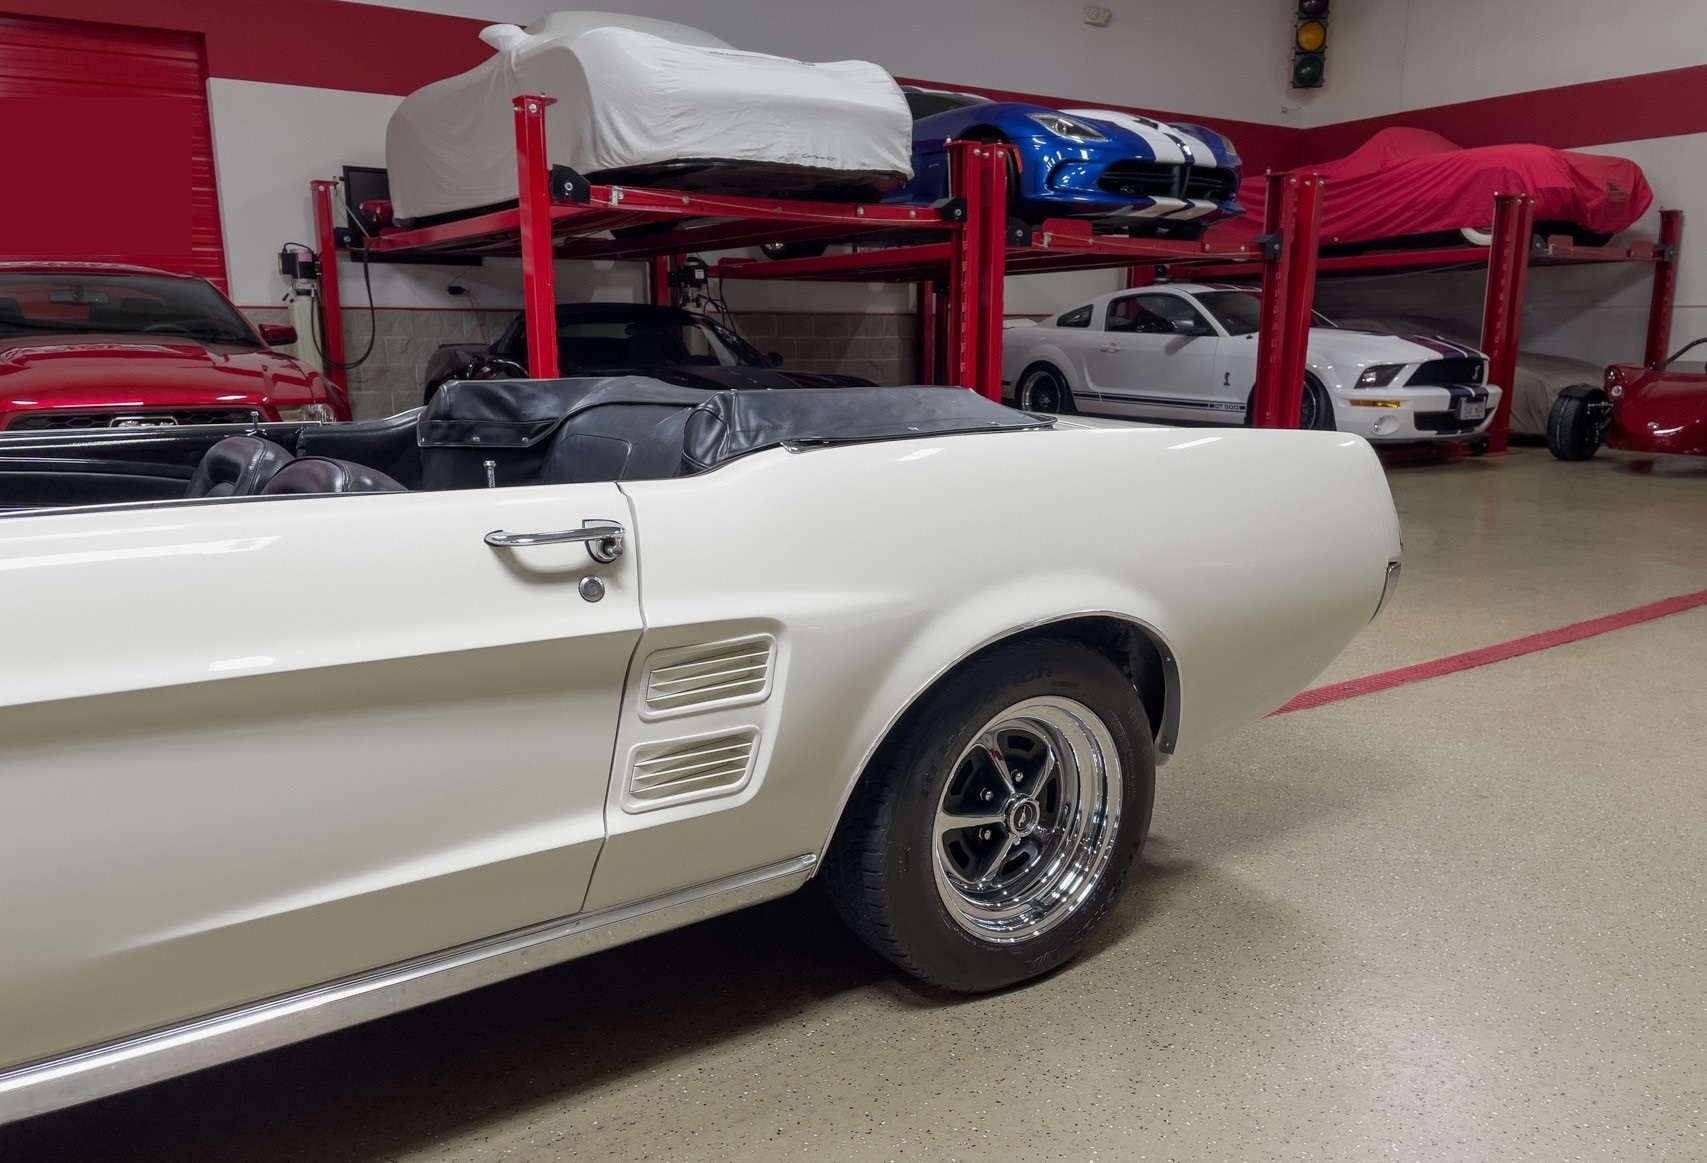 Ford-Mustang-cabriolet-1967-a22